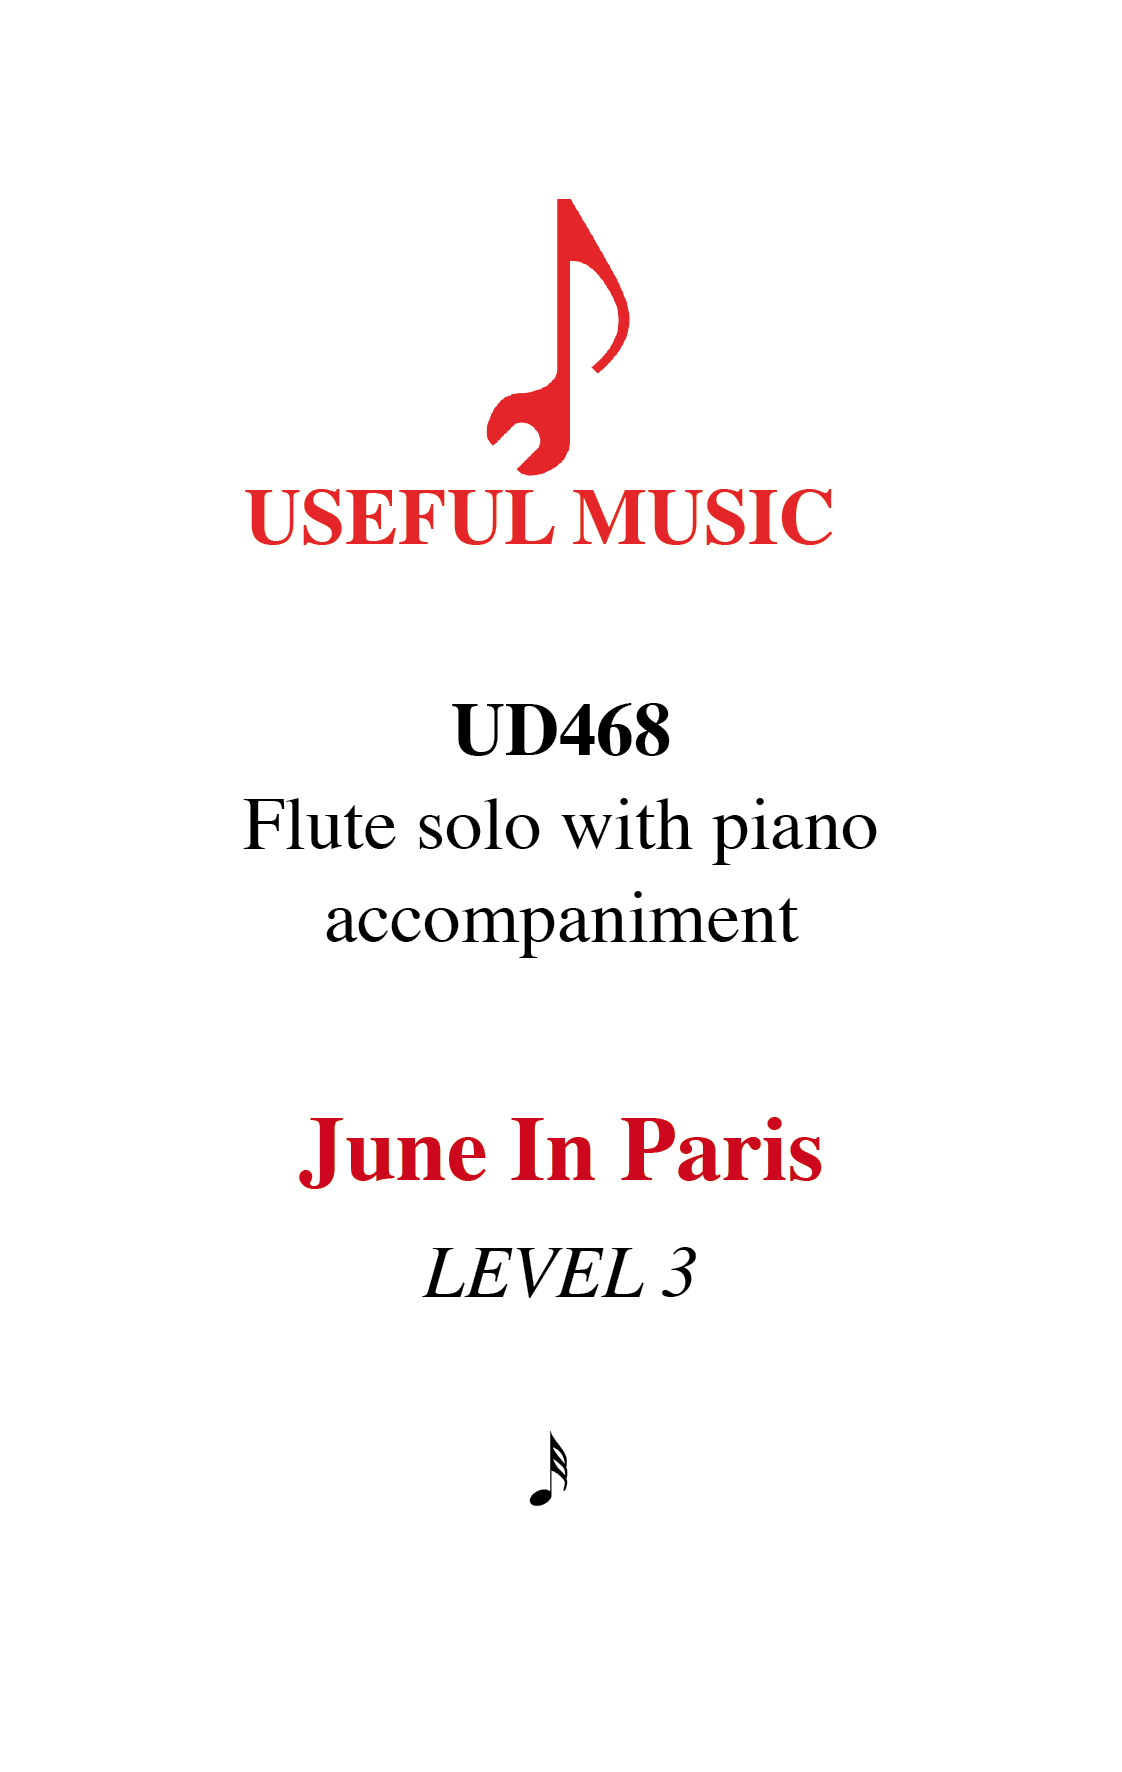 June in Paris - flute with piano accompaniment